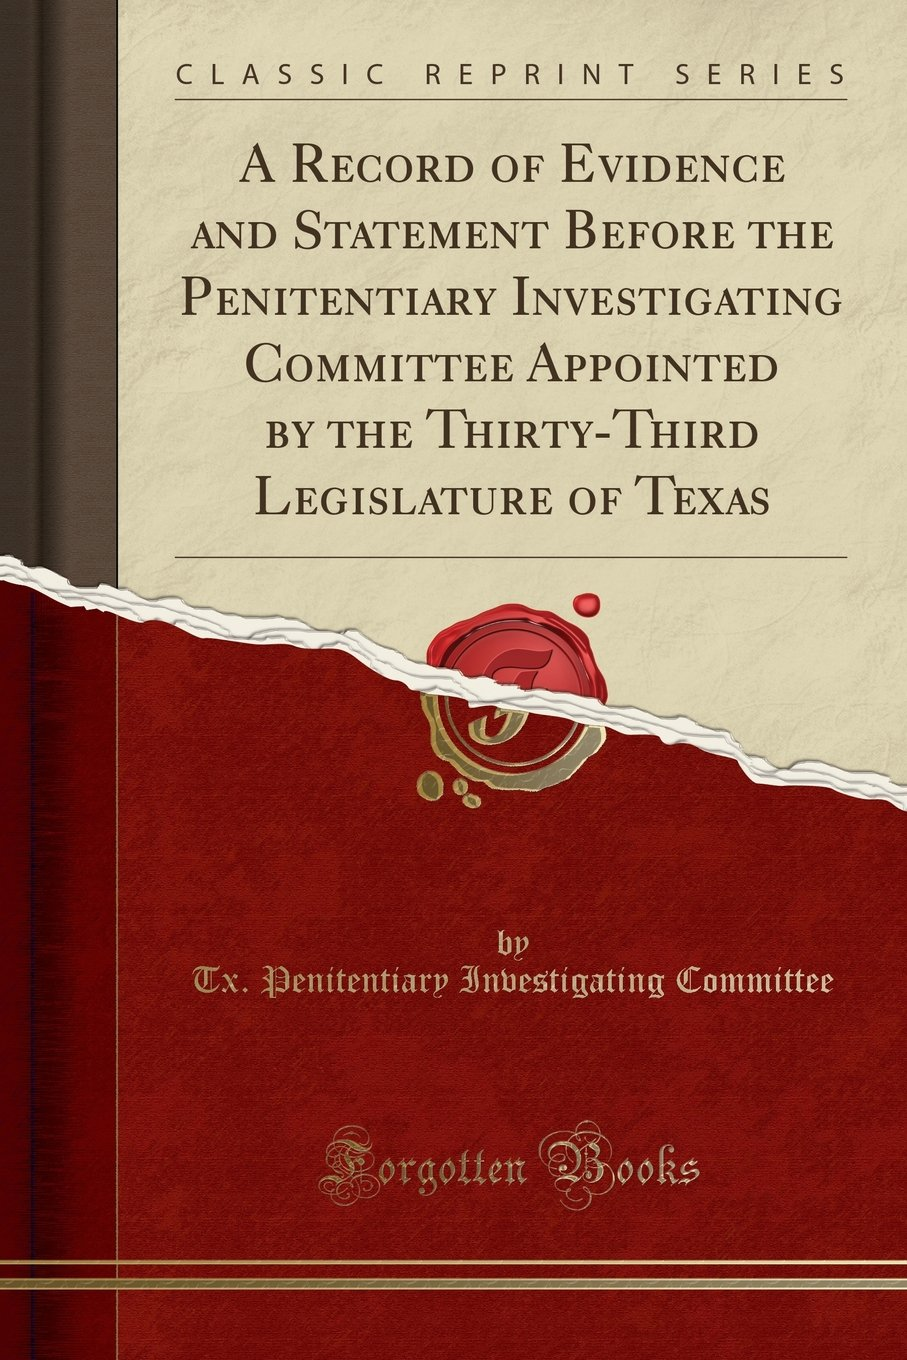 Read Online A Record of Evidence and Statement Before the Penitentiary Investigating Committee Appointed by the Thirty-Third Legislature of Texas (Classic Reprint) PDF